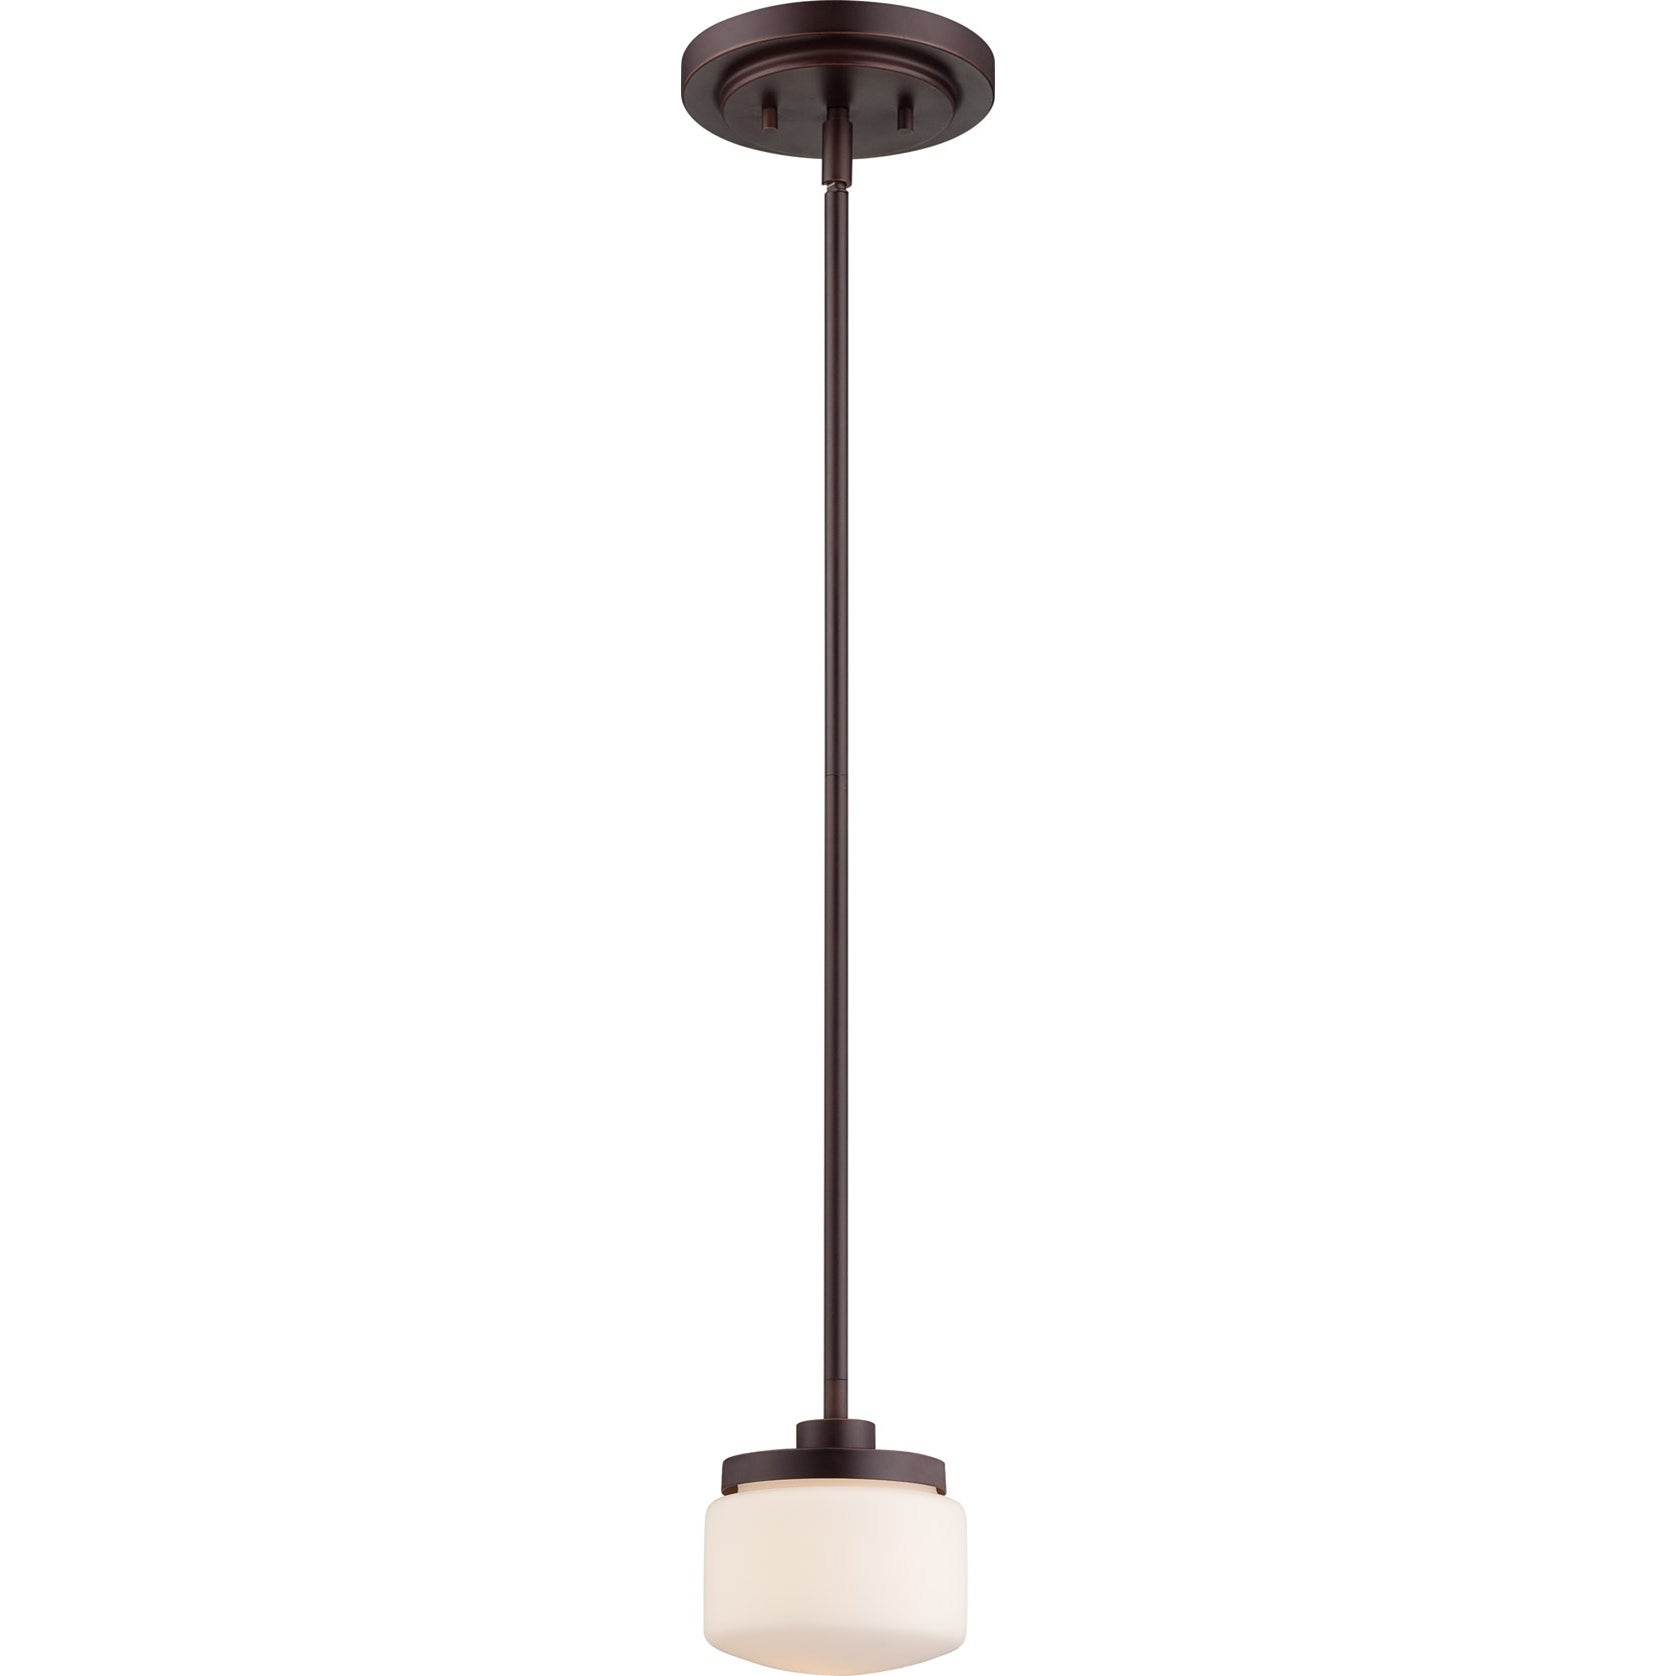 Nuvo Austin 1-light Russet Bronze Mini Pendant